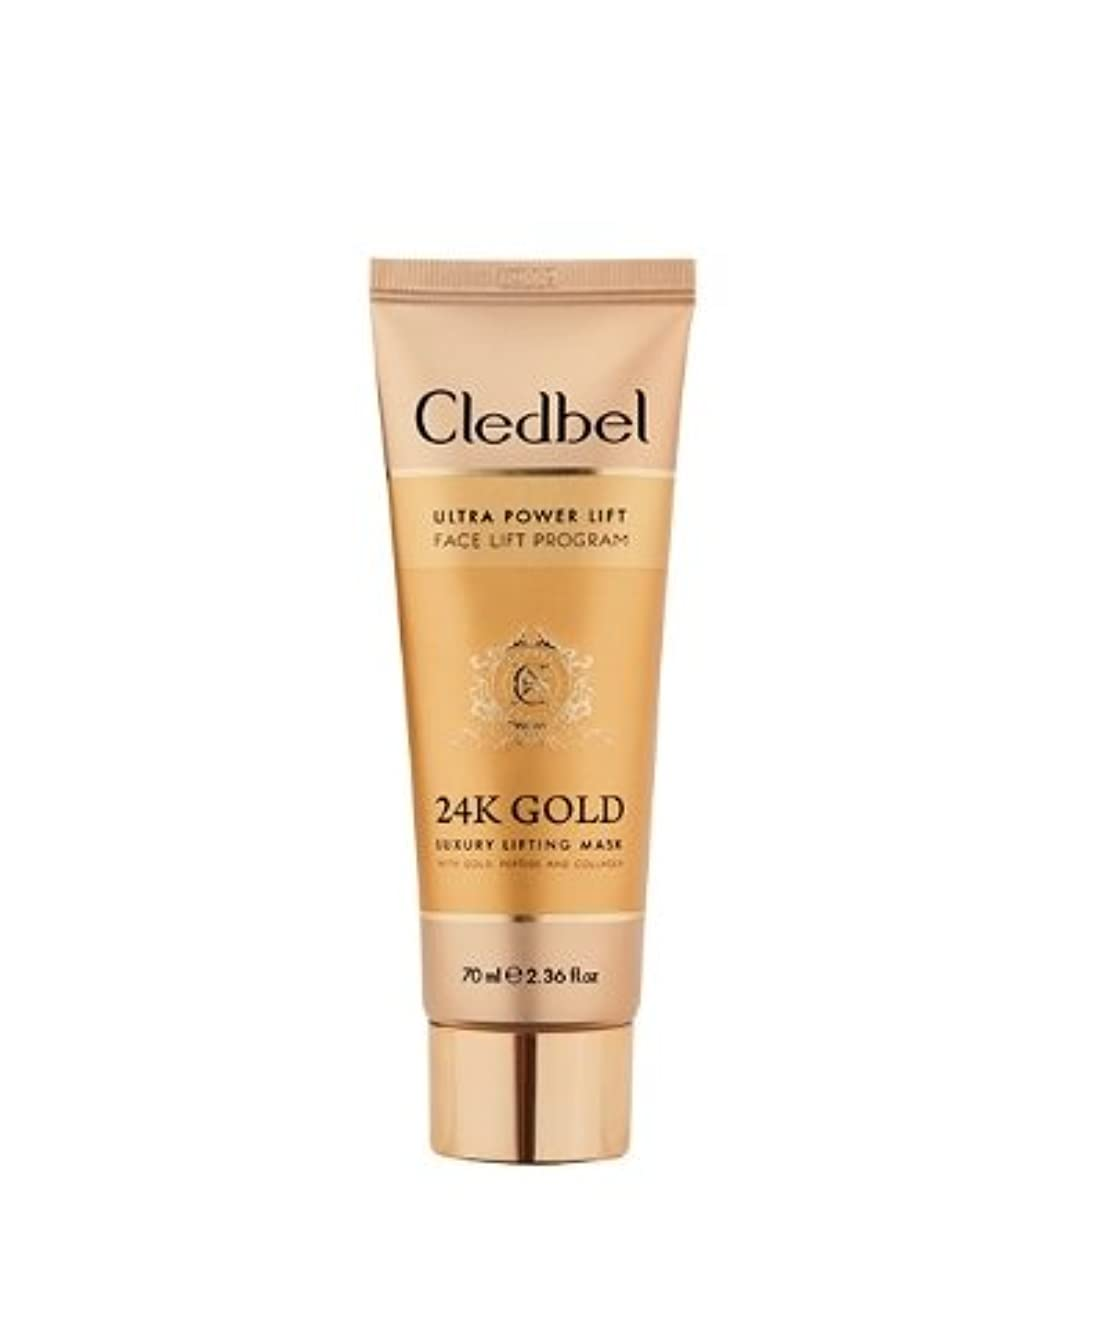 利益旋律的今後[Cledbel]Cledbel Ultra Power Lift 24K Gold Luxury Lifting Mask 70ml